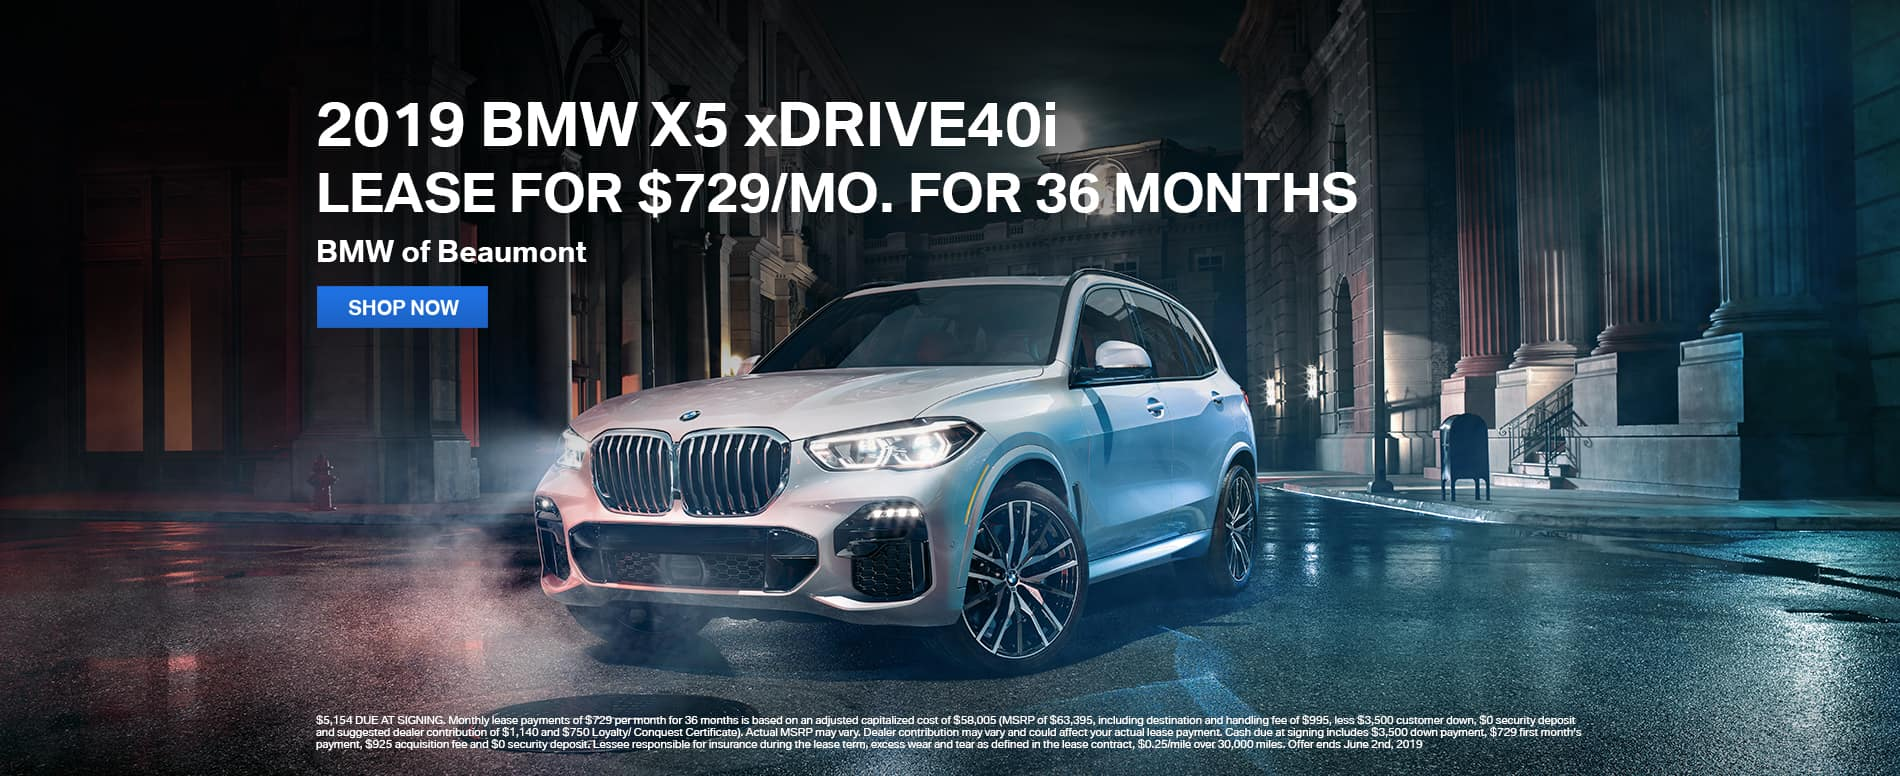 lease-2019-x5-xdrive40i-for-729-per-month-beaumont